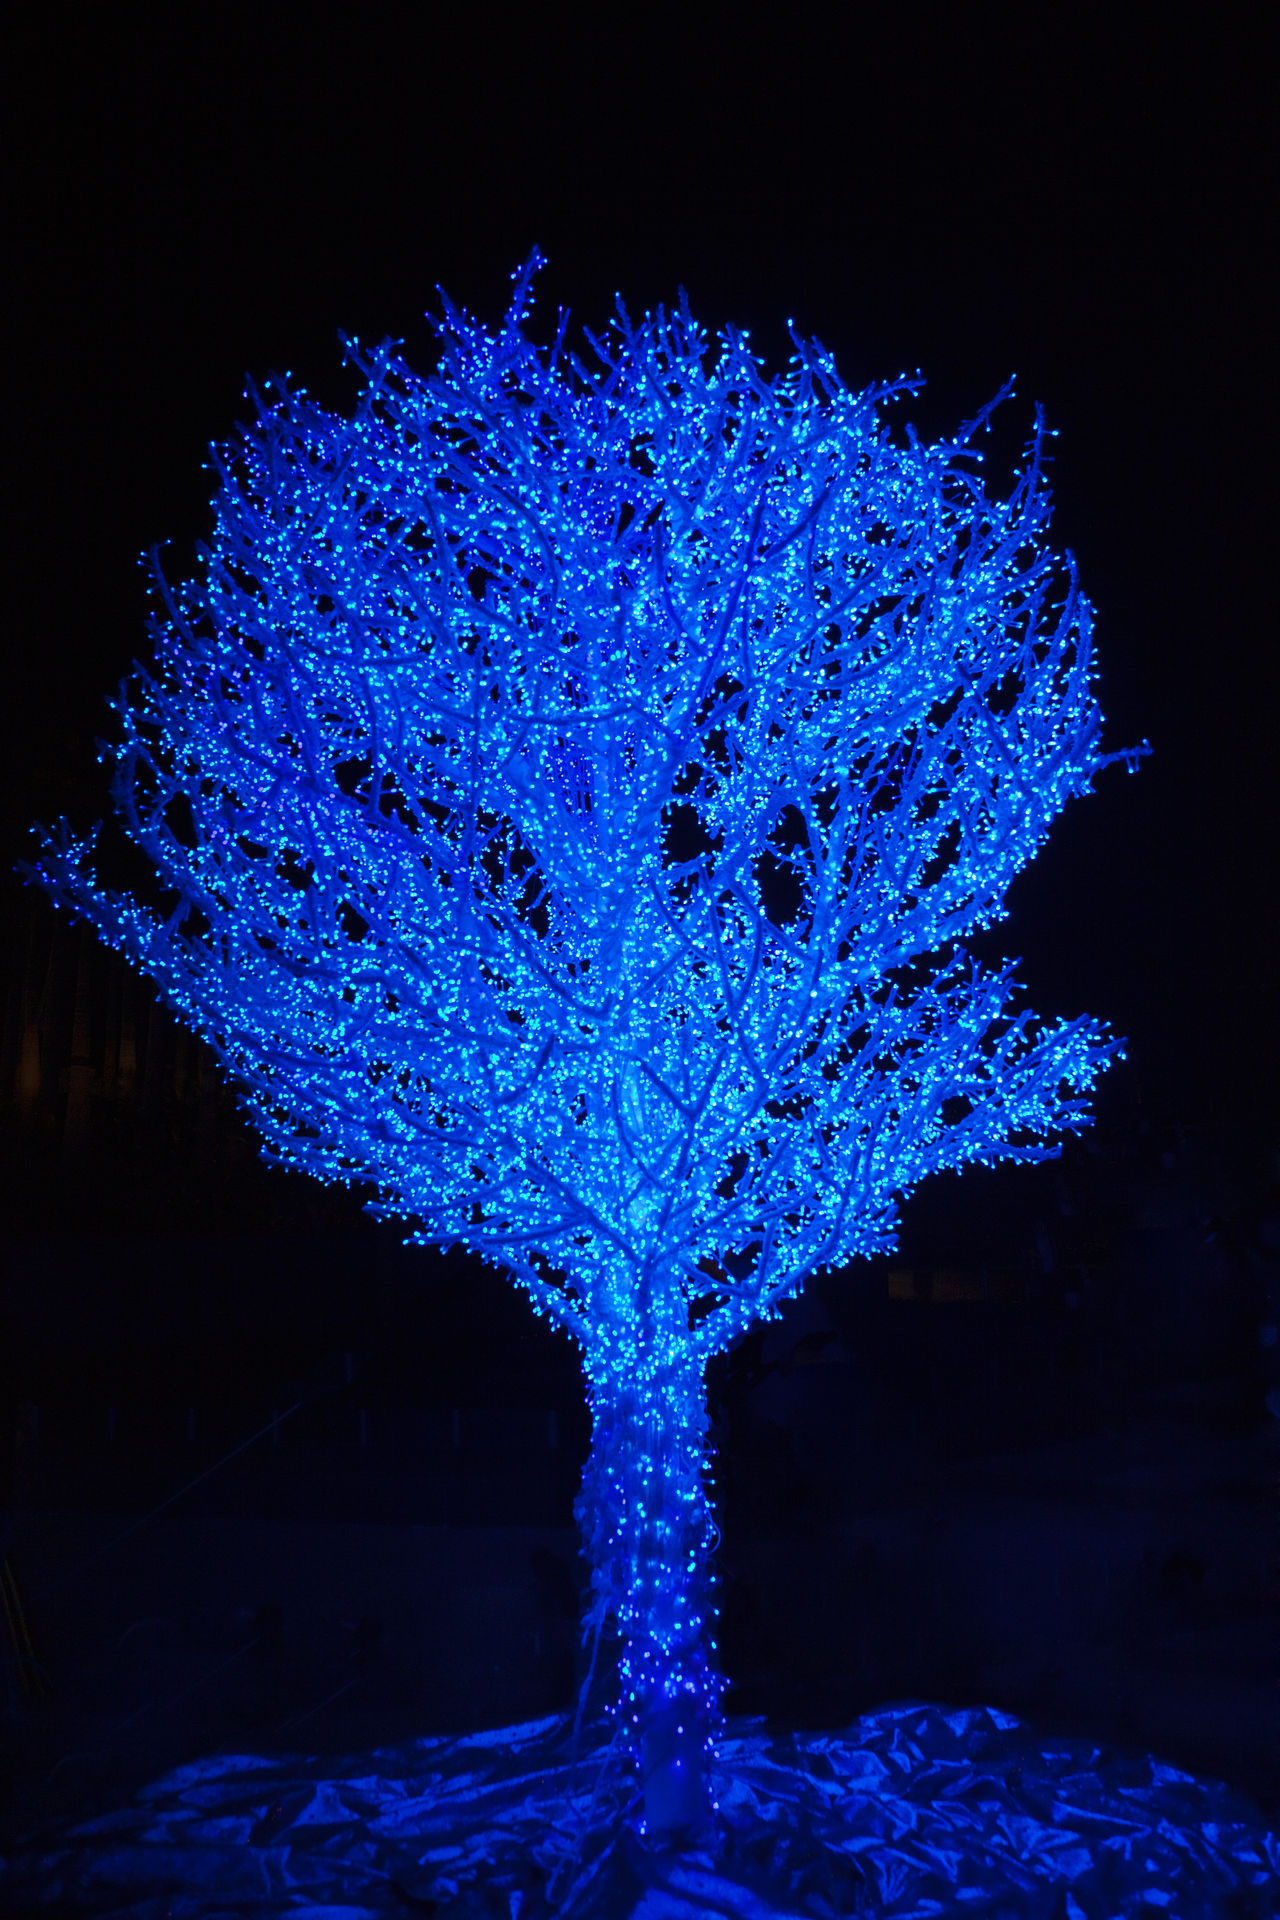 Blue Tree decorated with fairy lights for Christmas - Hong Kong at Night, China, Asia Beauty In Nature Blue Celebration Christmas Christmas Decoration Christmas Lights Christmas Tree Fairy Fairytale  Illuminated Kitsch Light Merry Christmas! Nature Night No People Silhouette Silhouettes Single Tree Tree Winter Xmas Xmas Decorations Xmas Time Xmas Tree